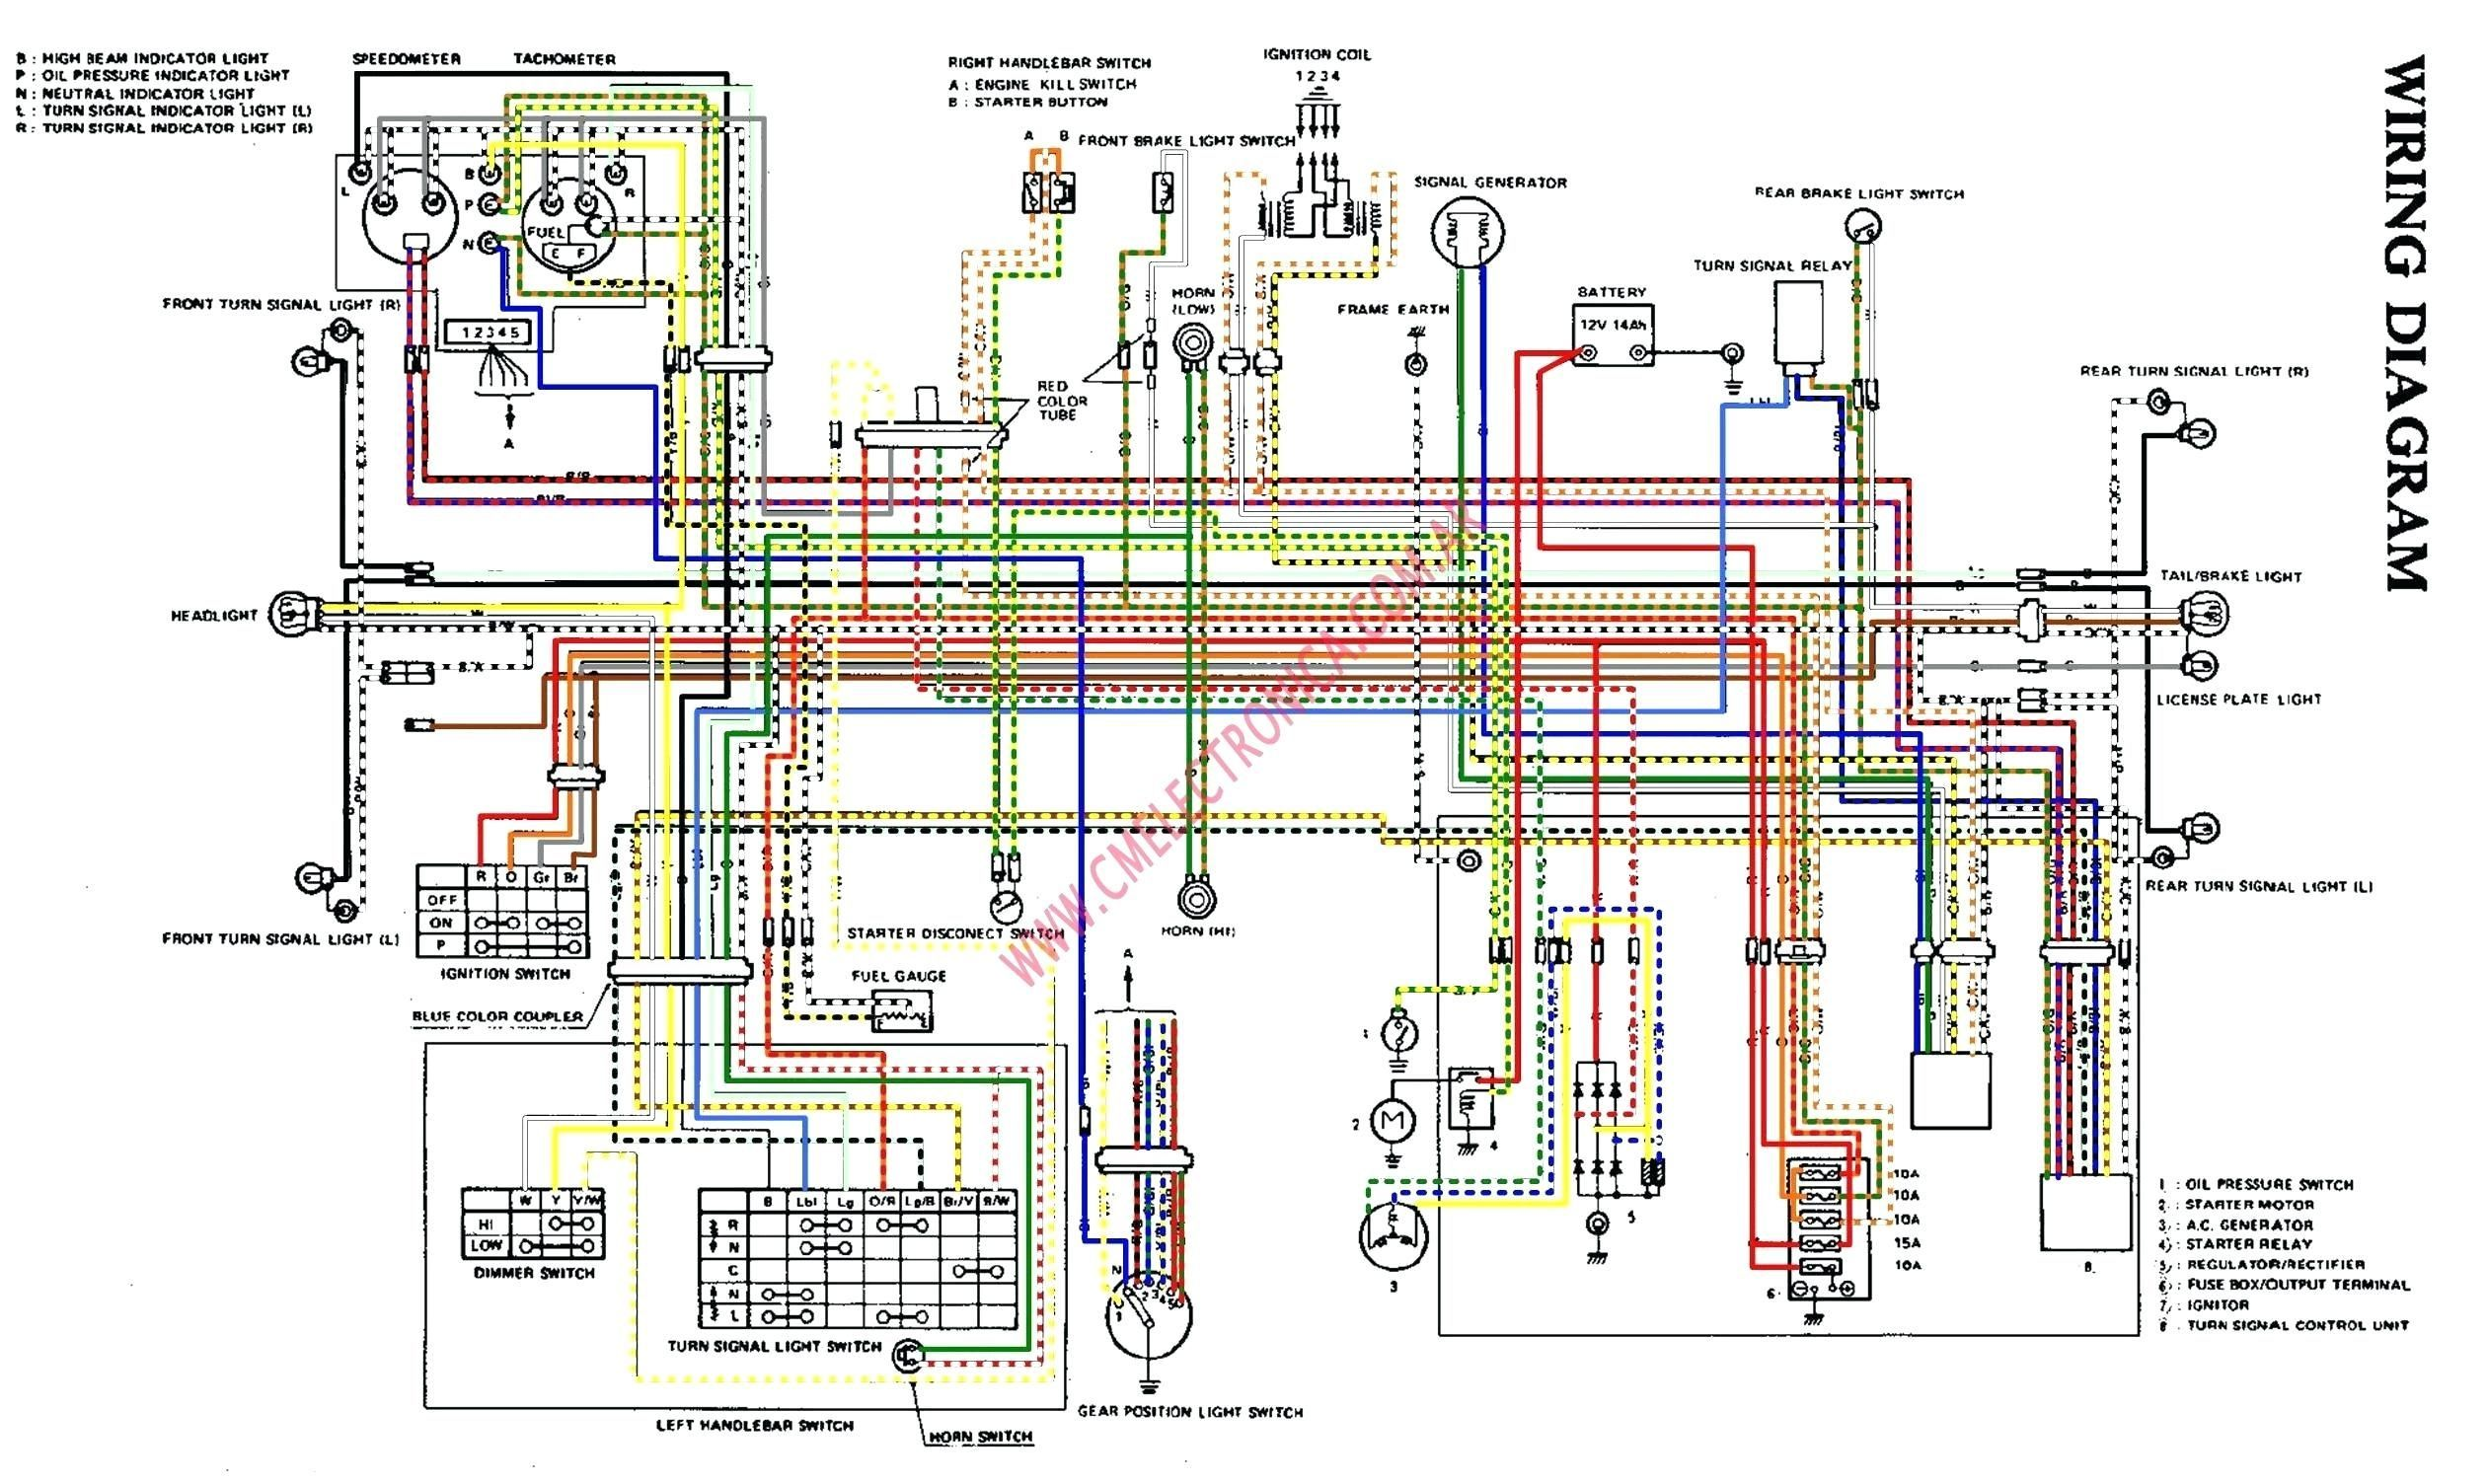 Wiring Diagram For Electric Trailer Jack Motorcycle Wiring Diagram Wiring Diagram